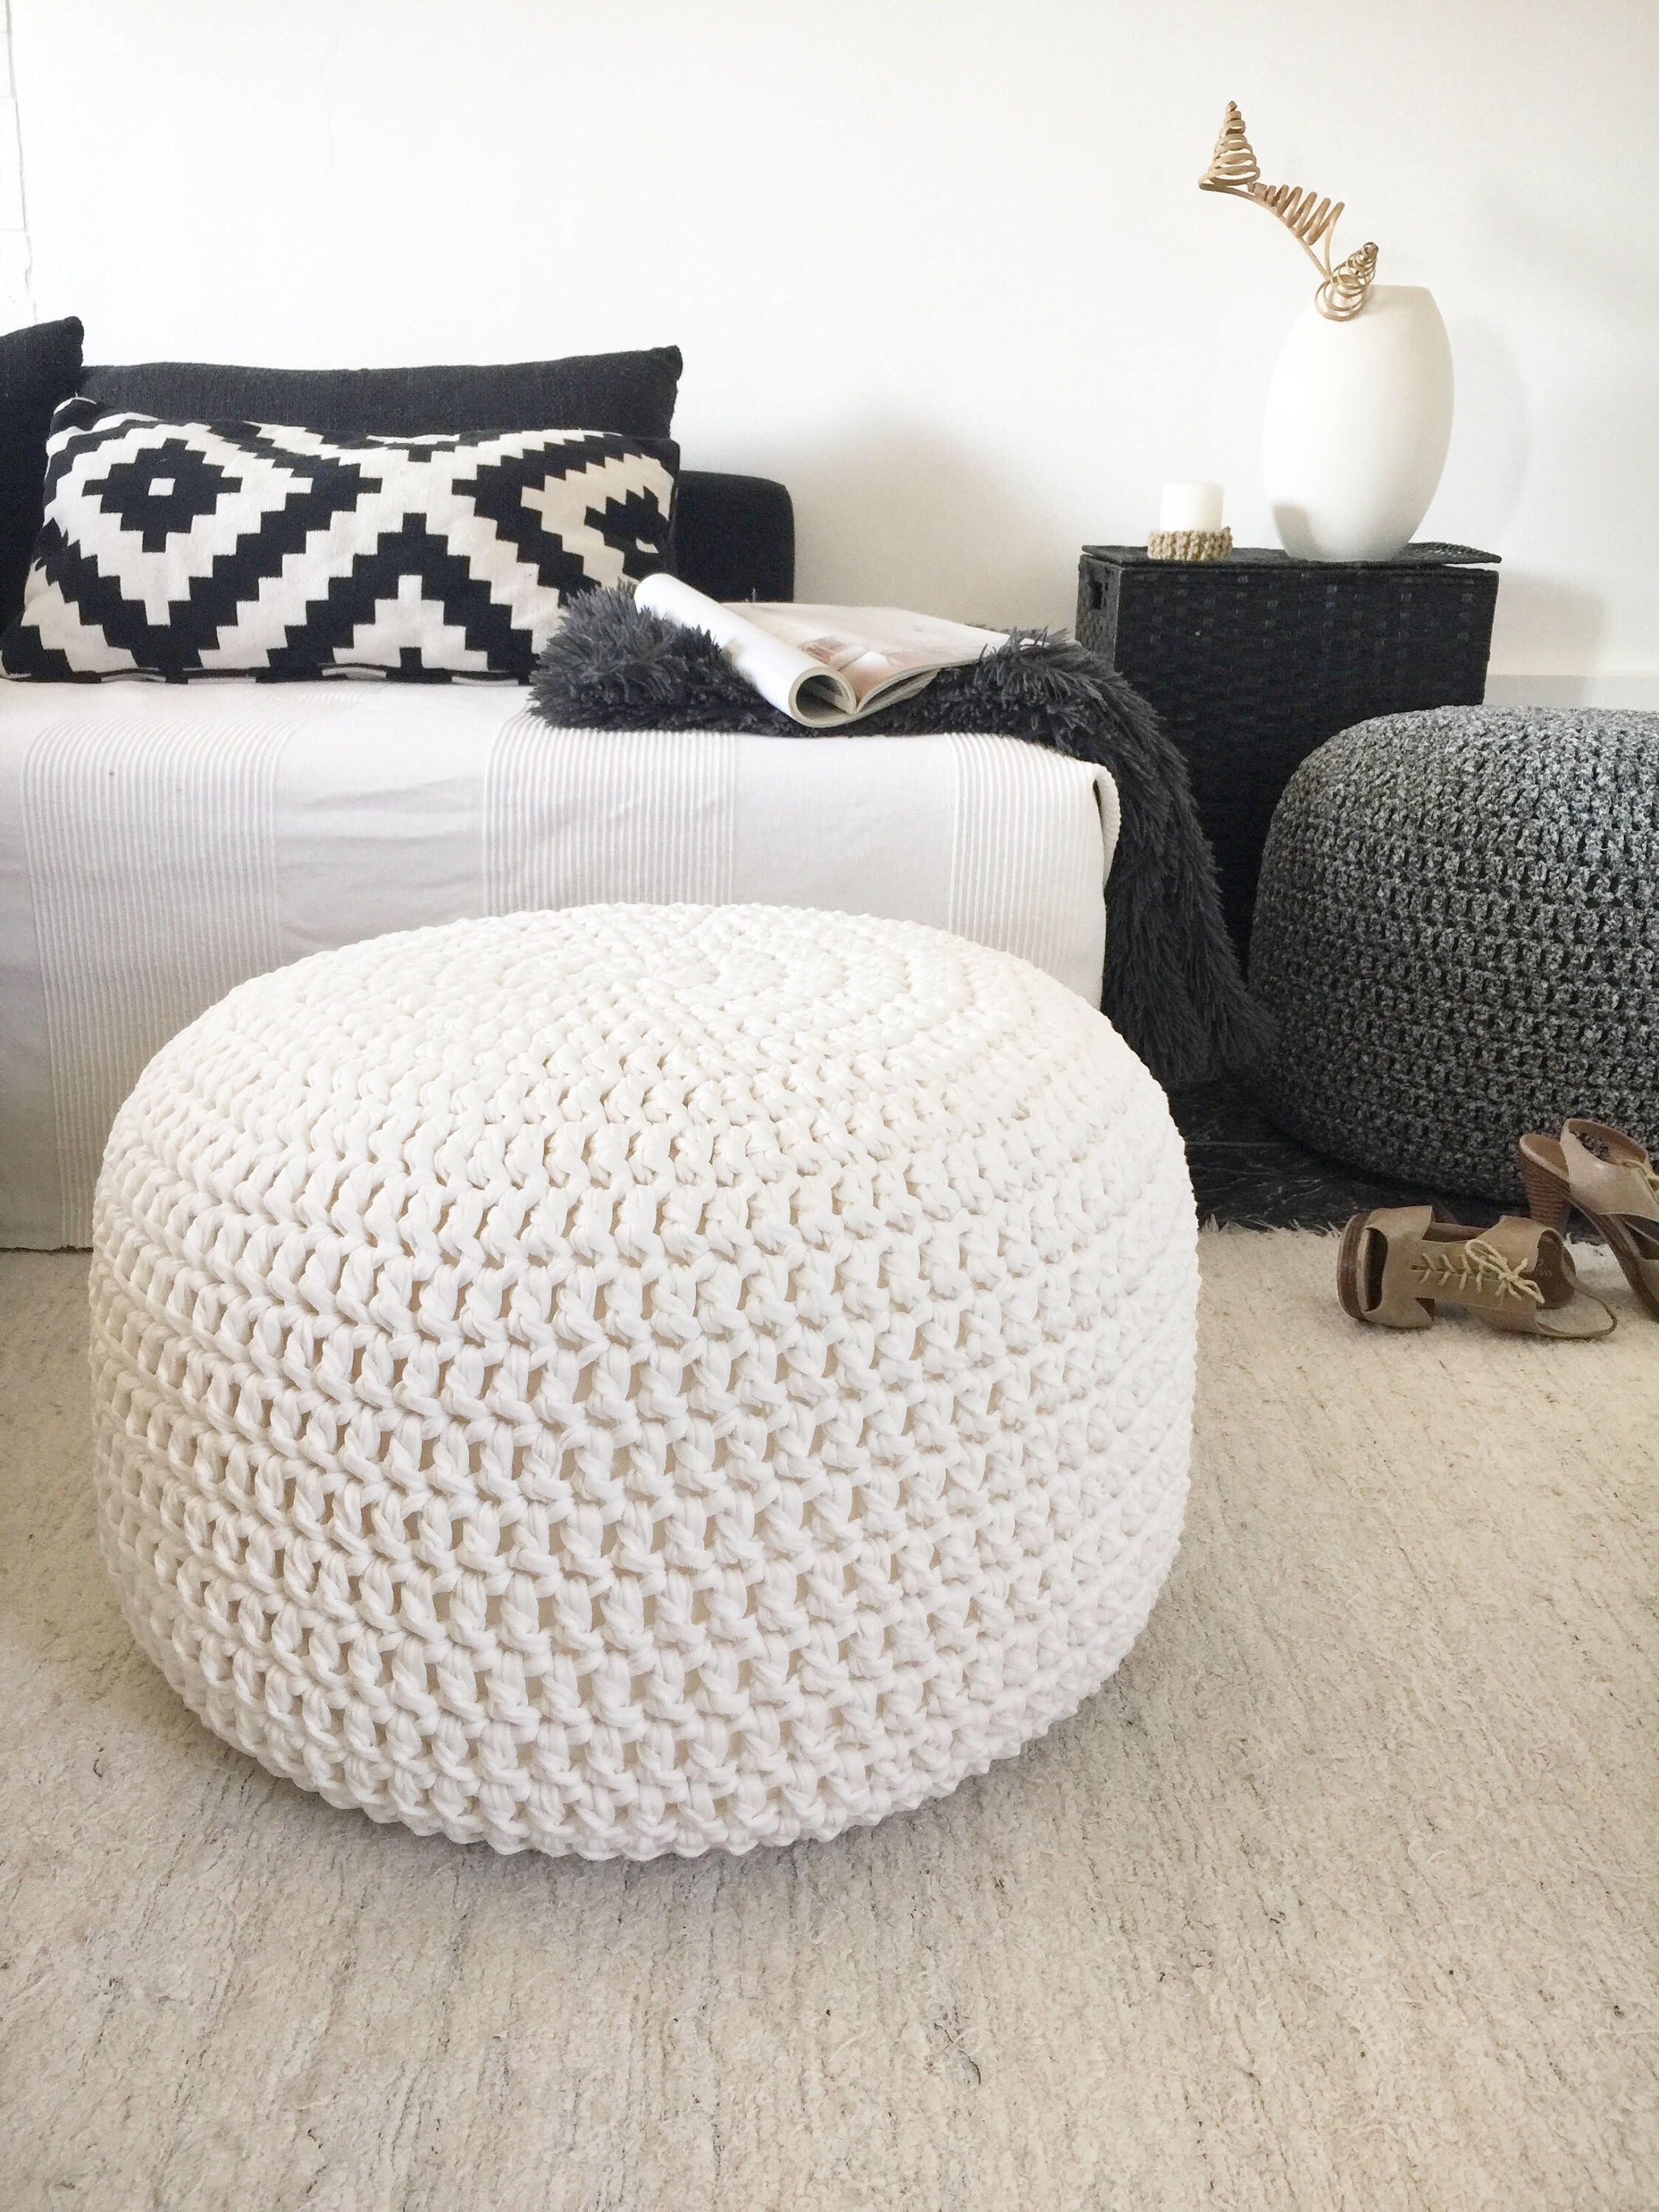 "Large Pouf Ottoman New Large Stuffed Crochet Pouf Ottoman Nursery Footstool 24"" Floor Decorating Design"